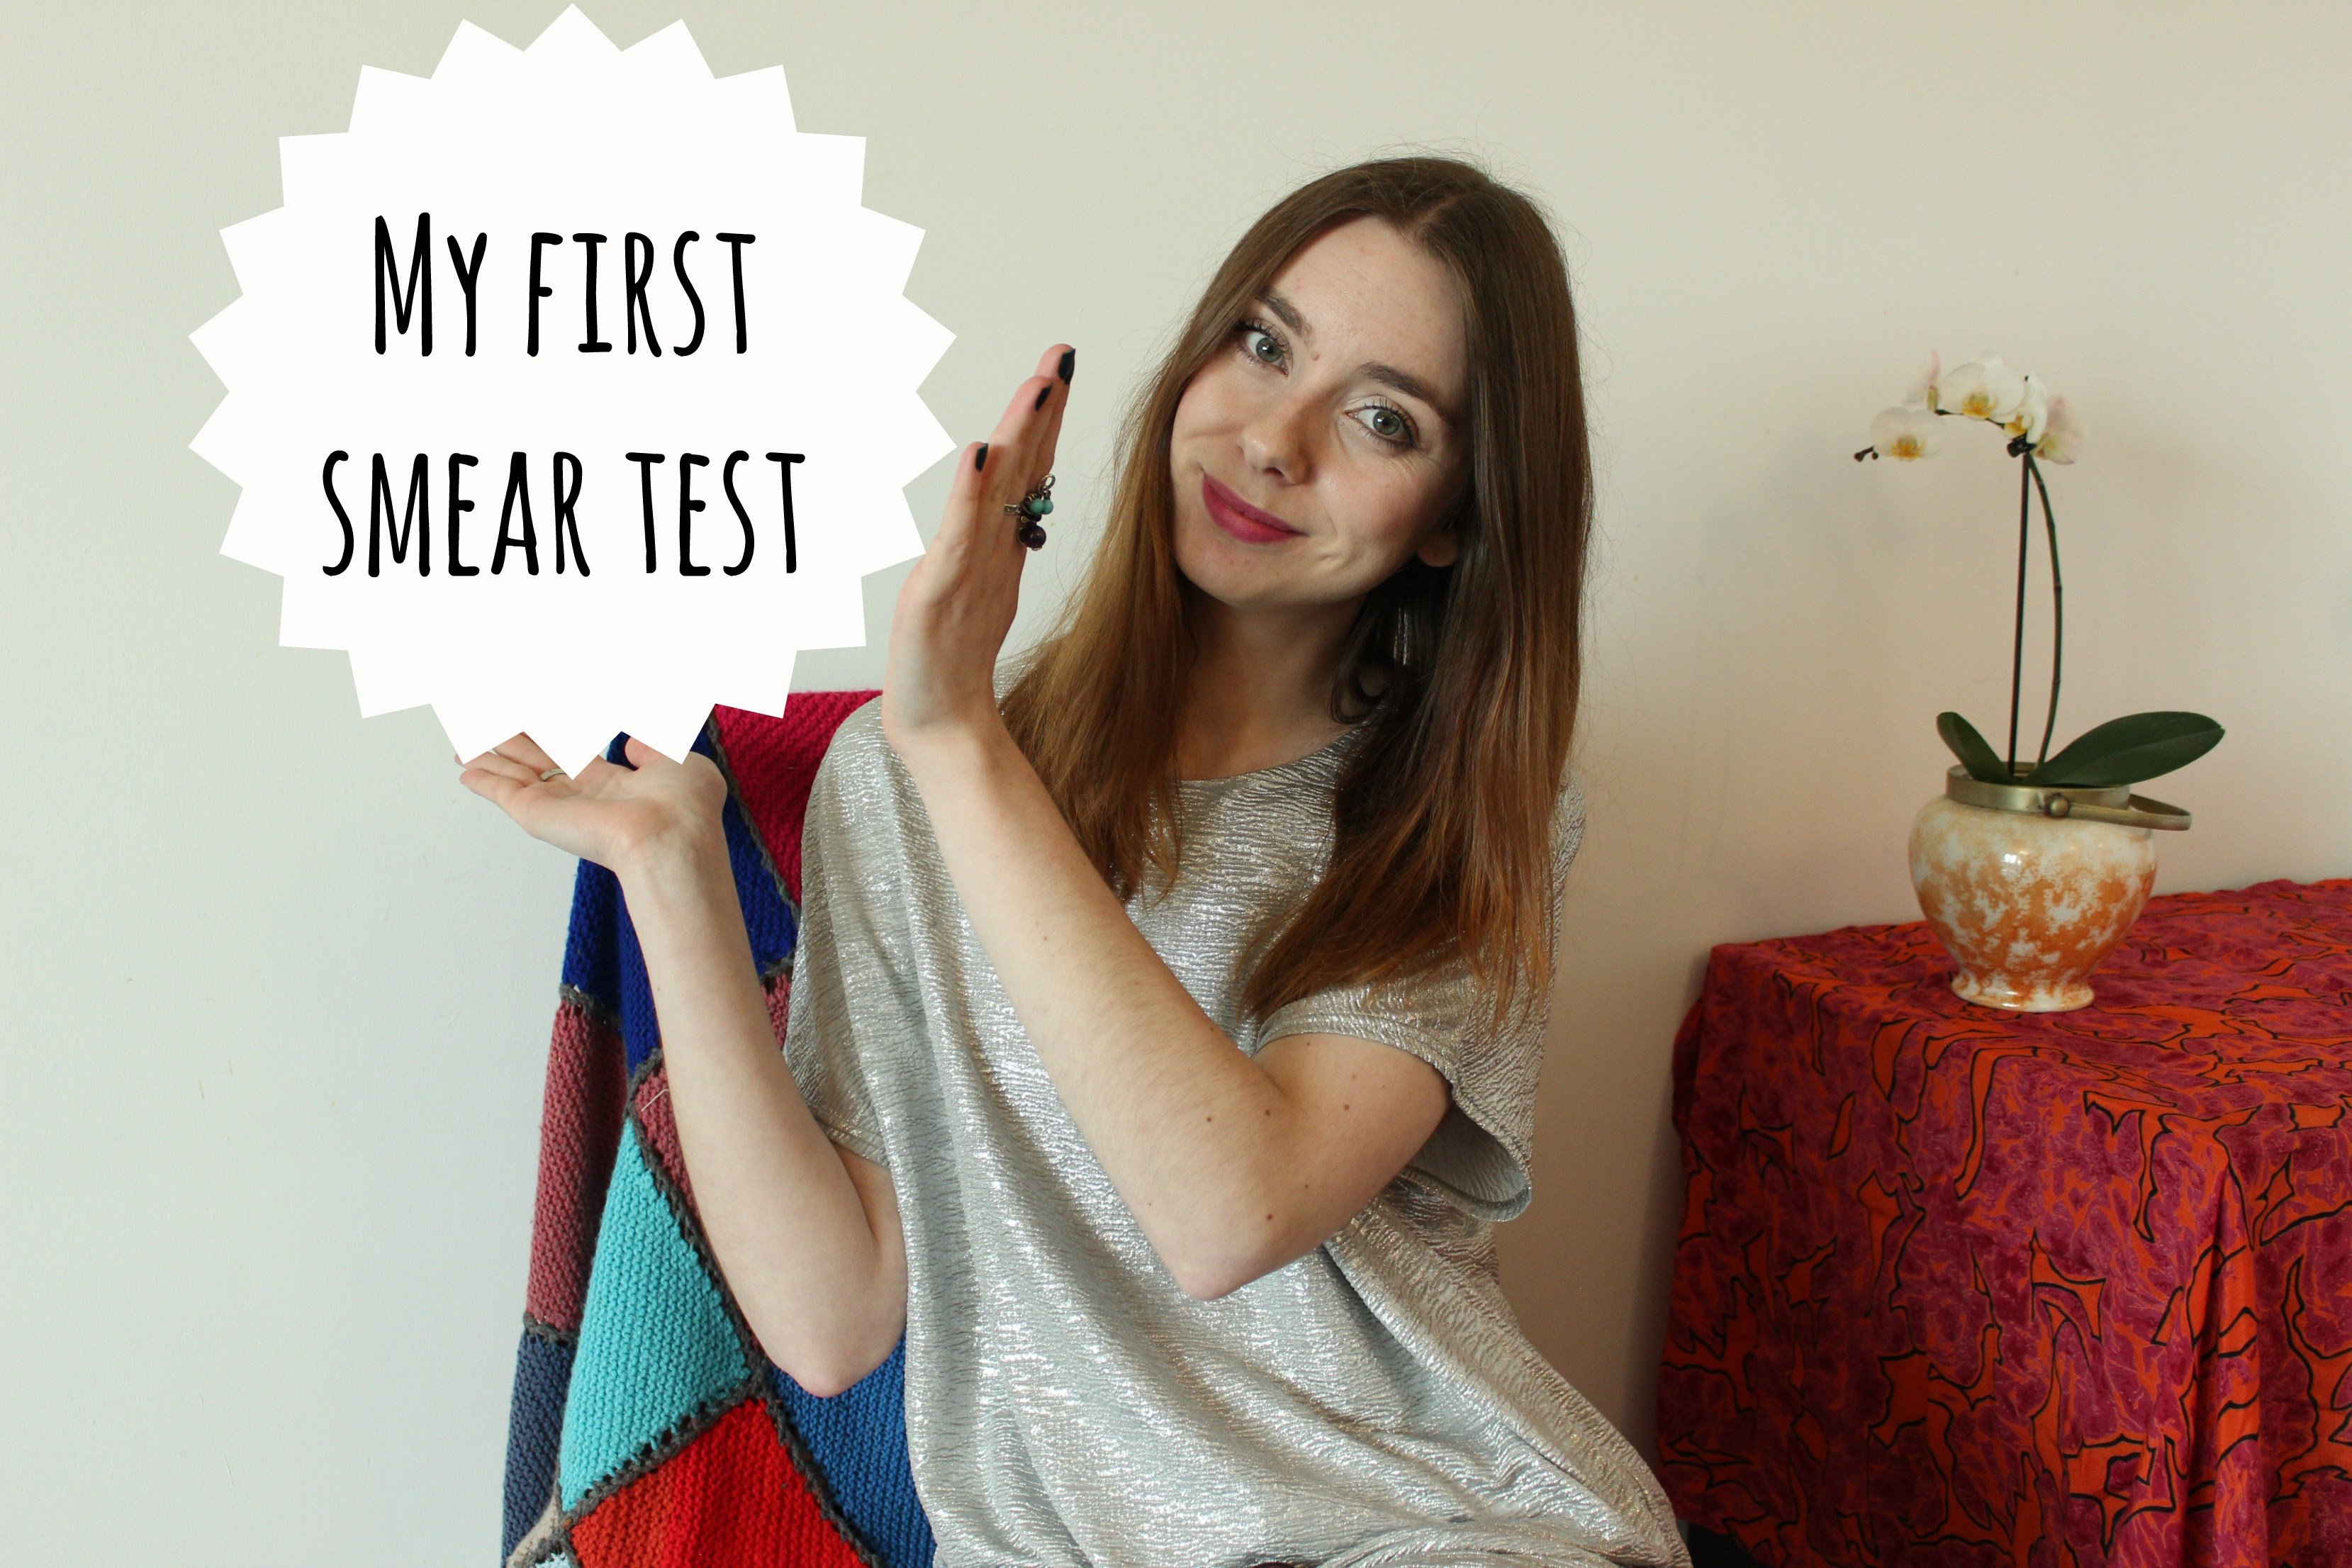 My first smear test, worries and anxieties. Does it hurt?